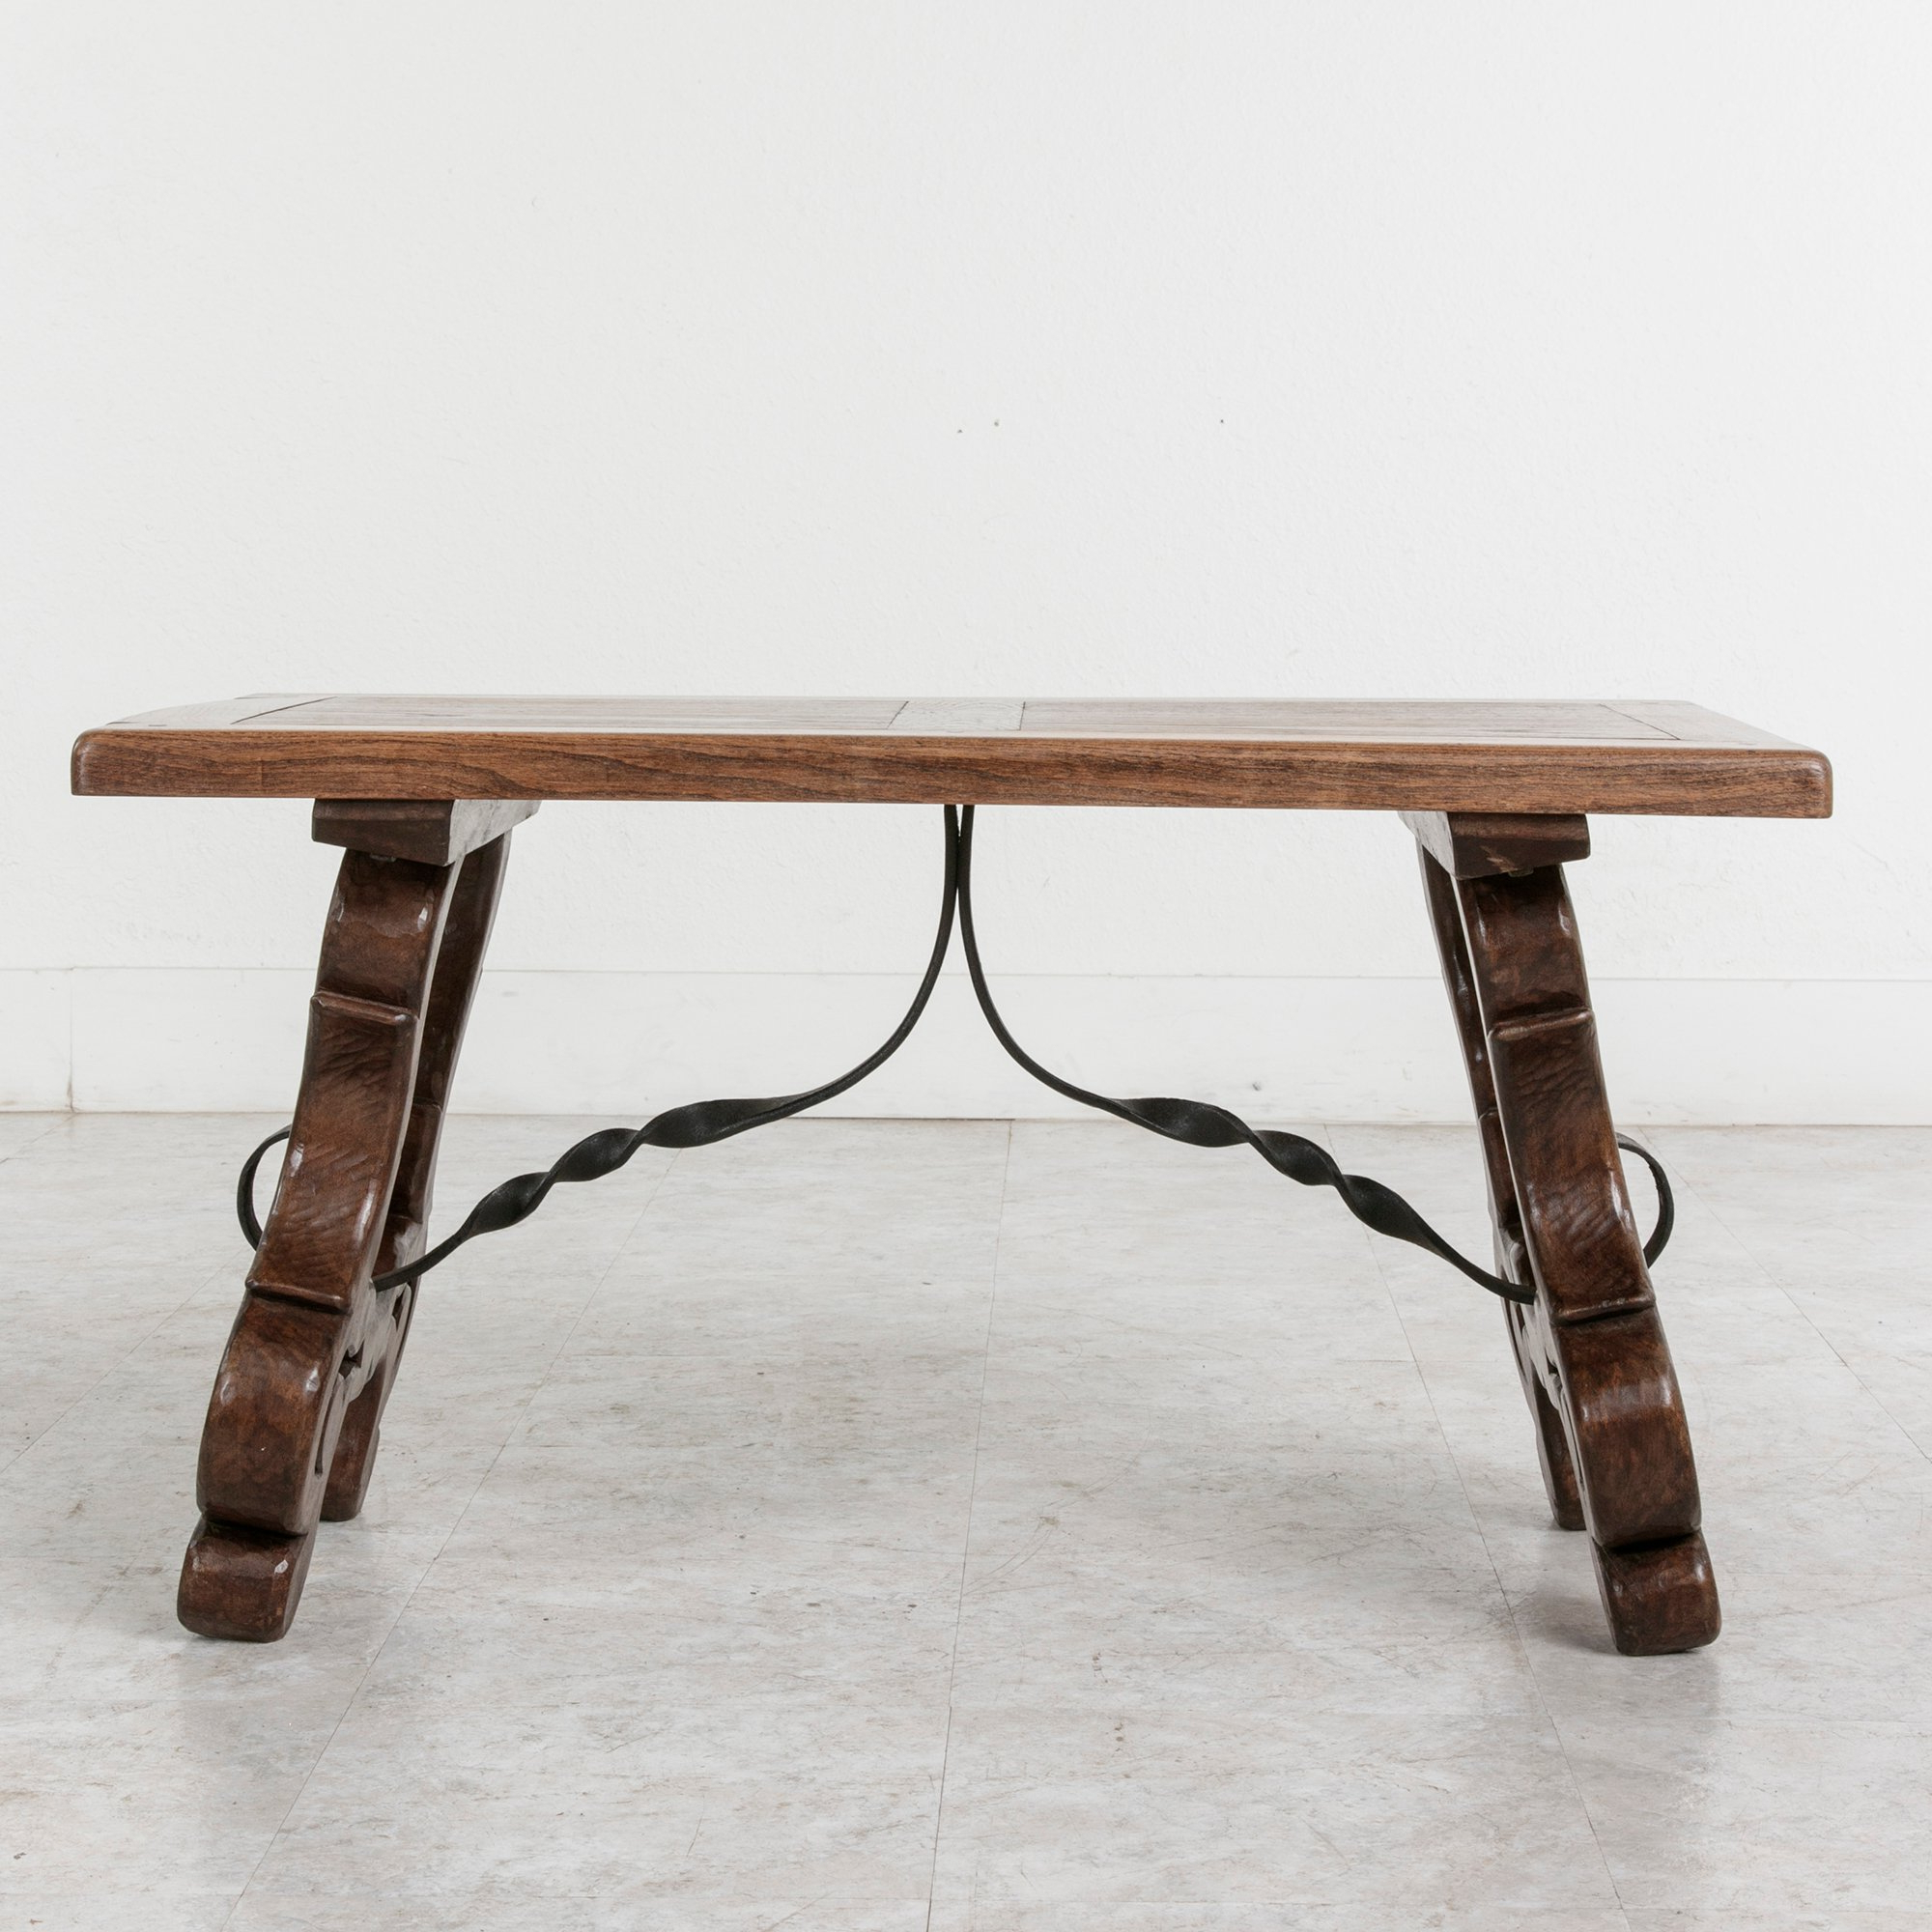 Famous Spanish Coffee Tables Intended For Early 20Th Century Spanish Style Oak Coffee Table Or Bench With Iron (View 6 of 20)